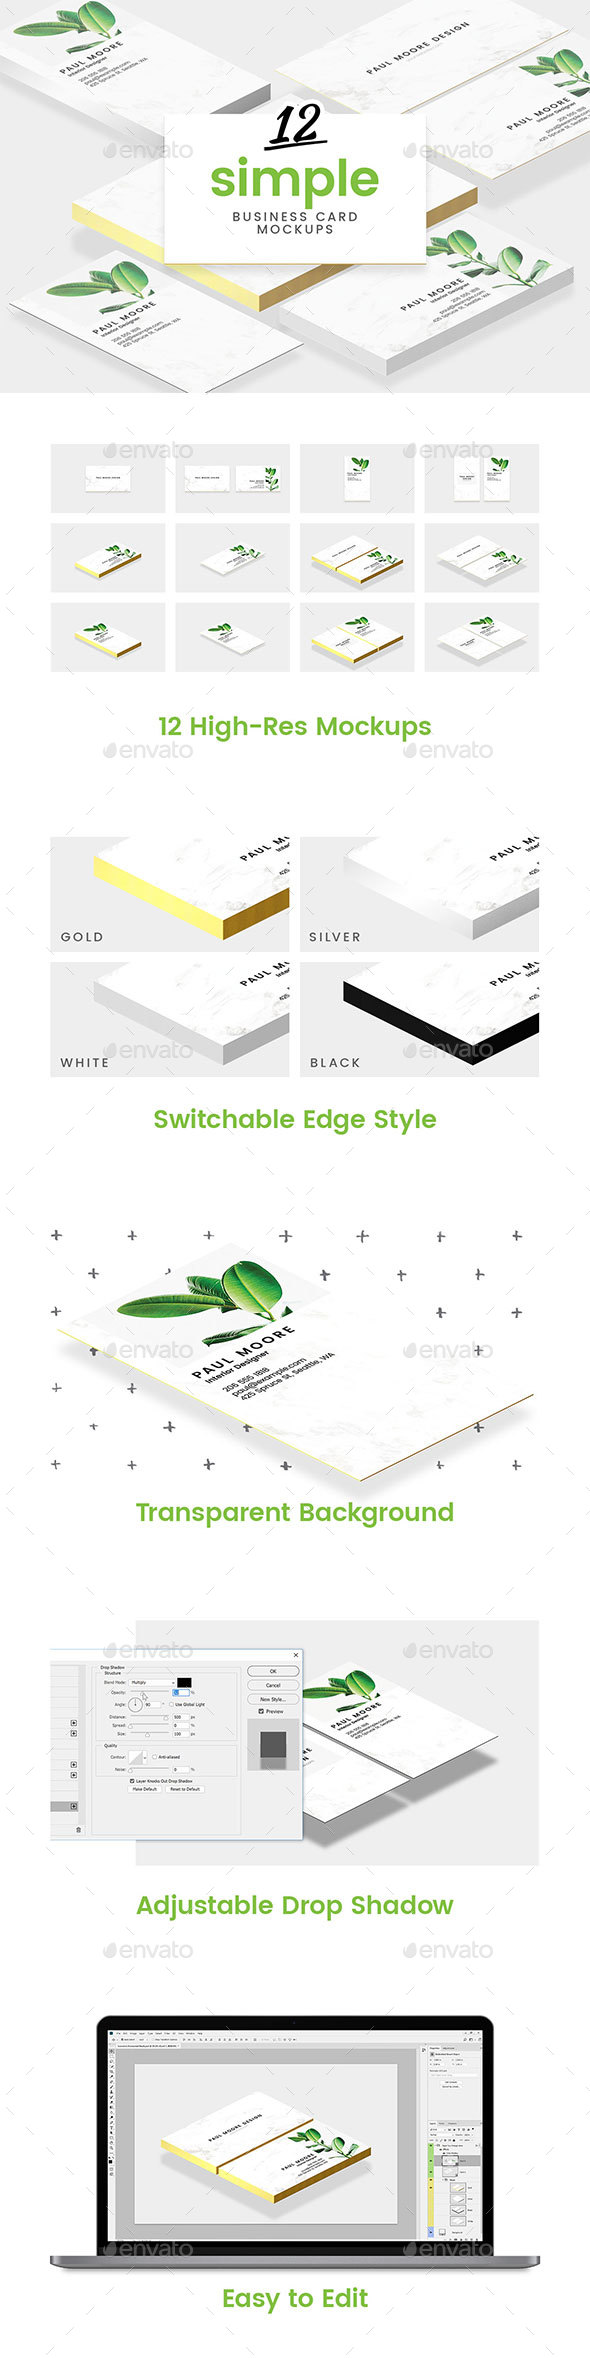 GraphicRiver 12 Simple Business Card Mockups 20900936